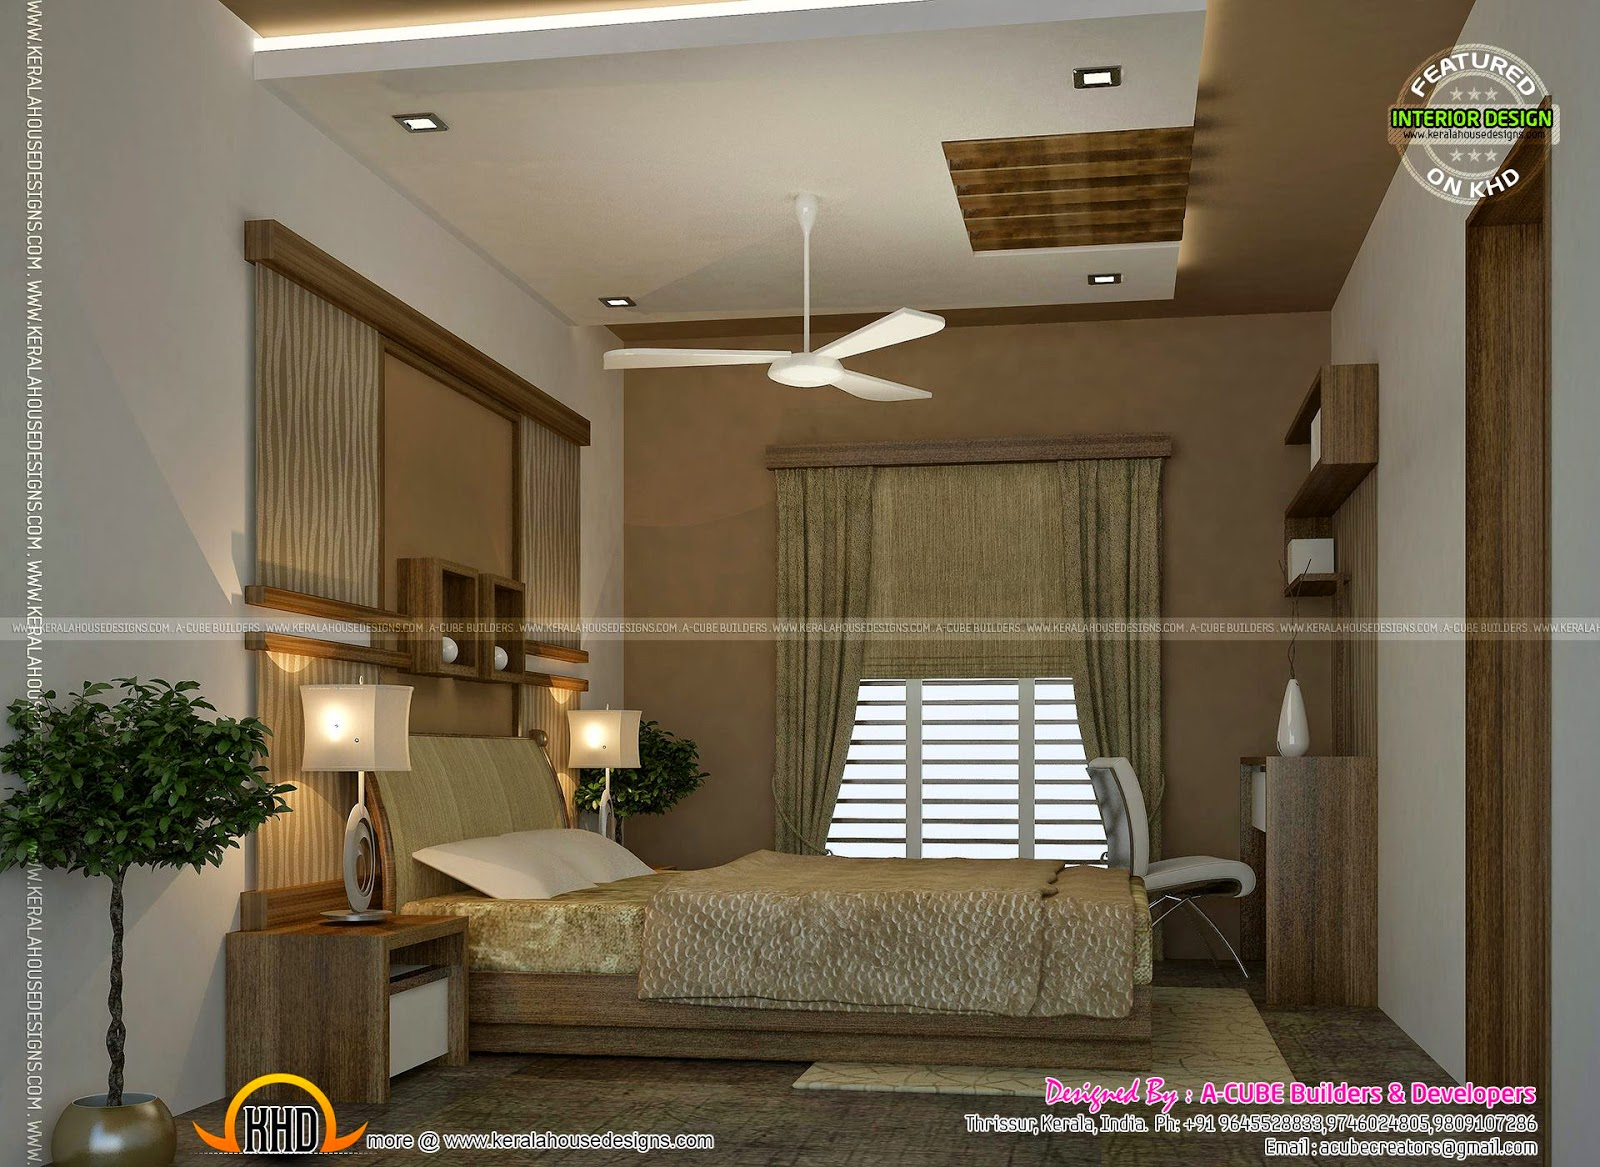 Kerala interior design ideas kerala home design and for Kerala homes interior designs